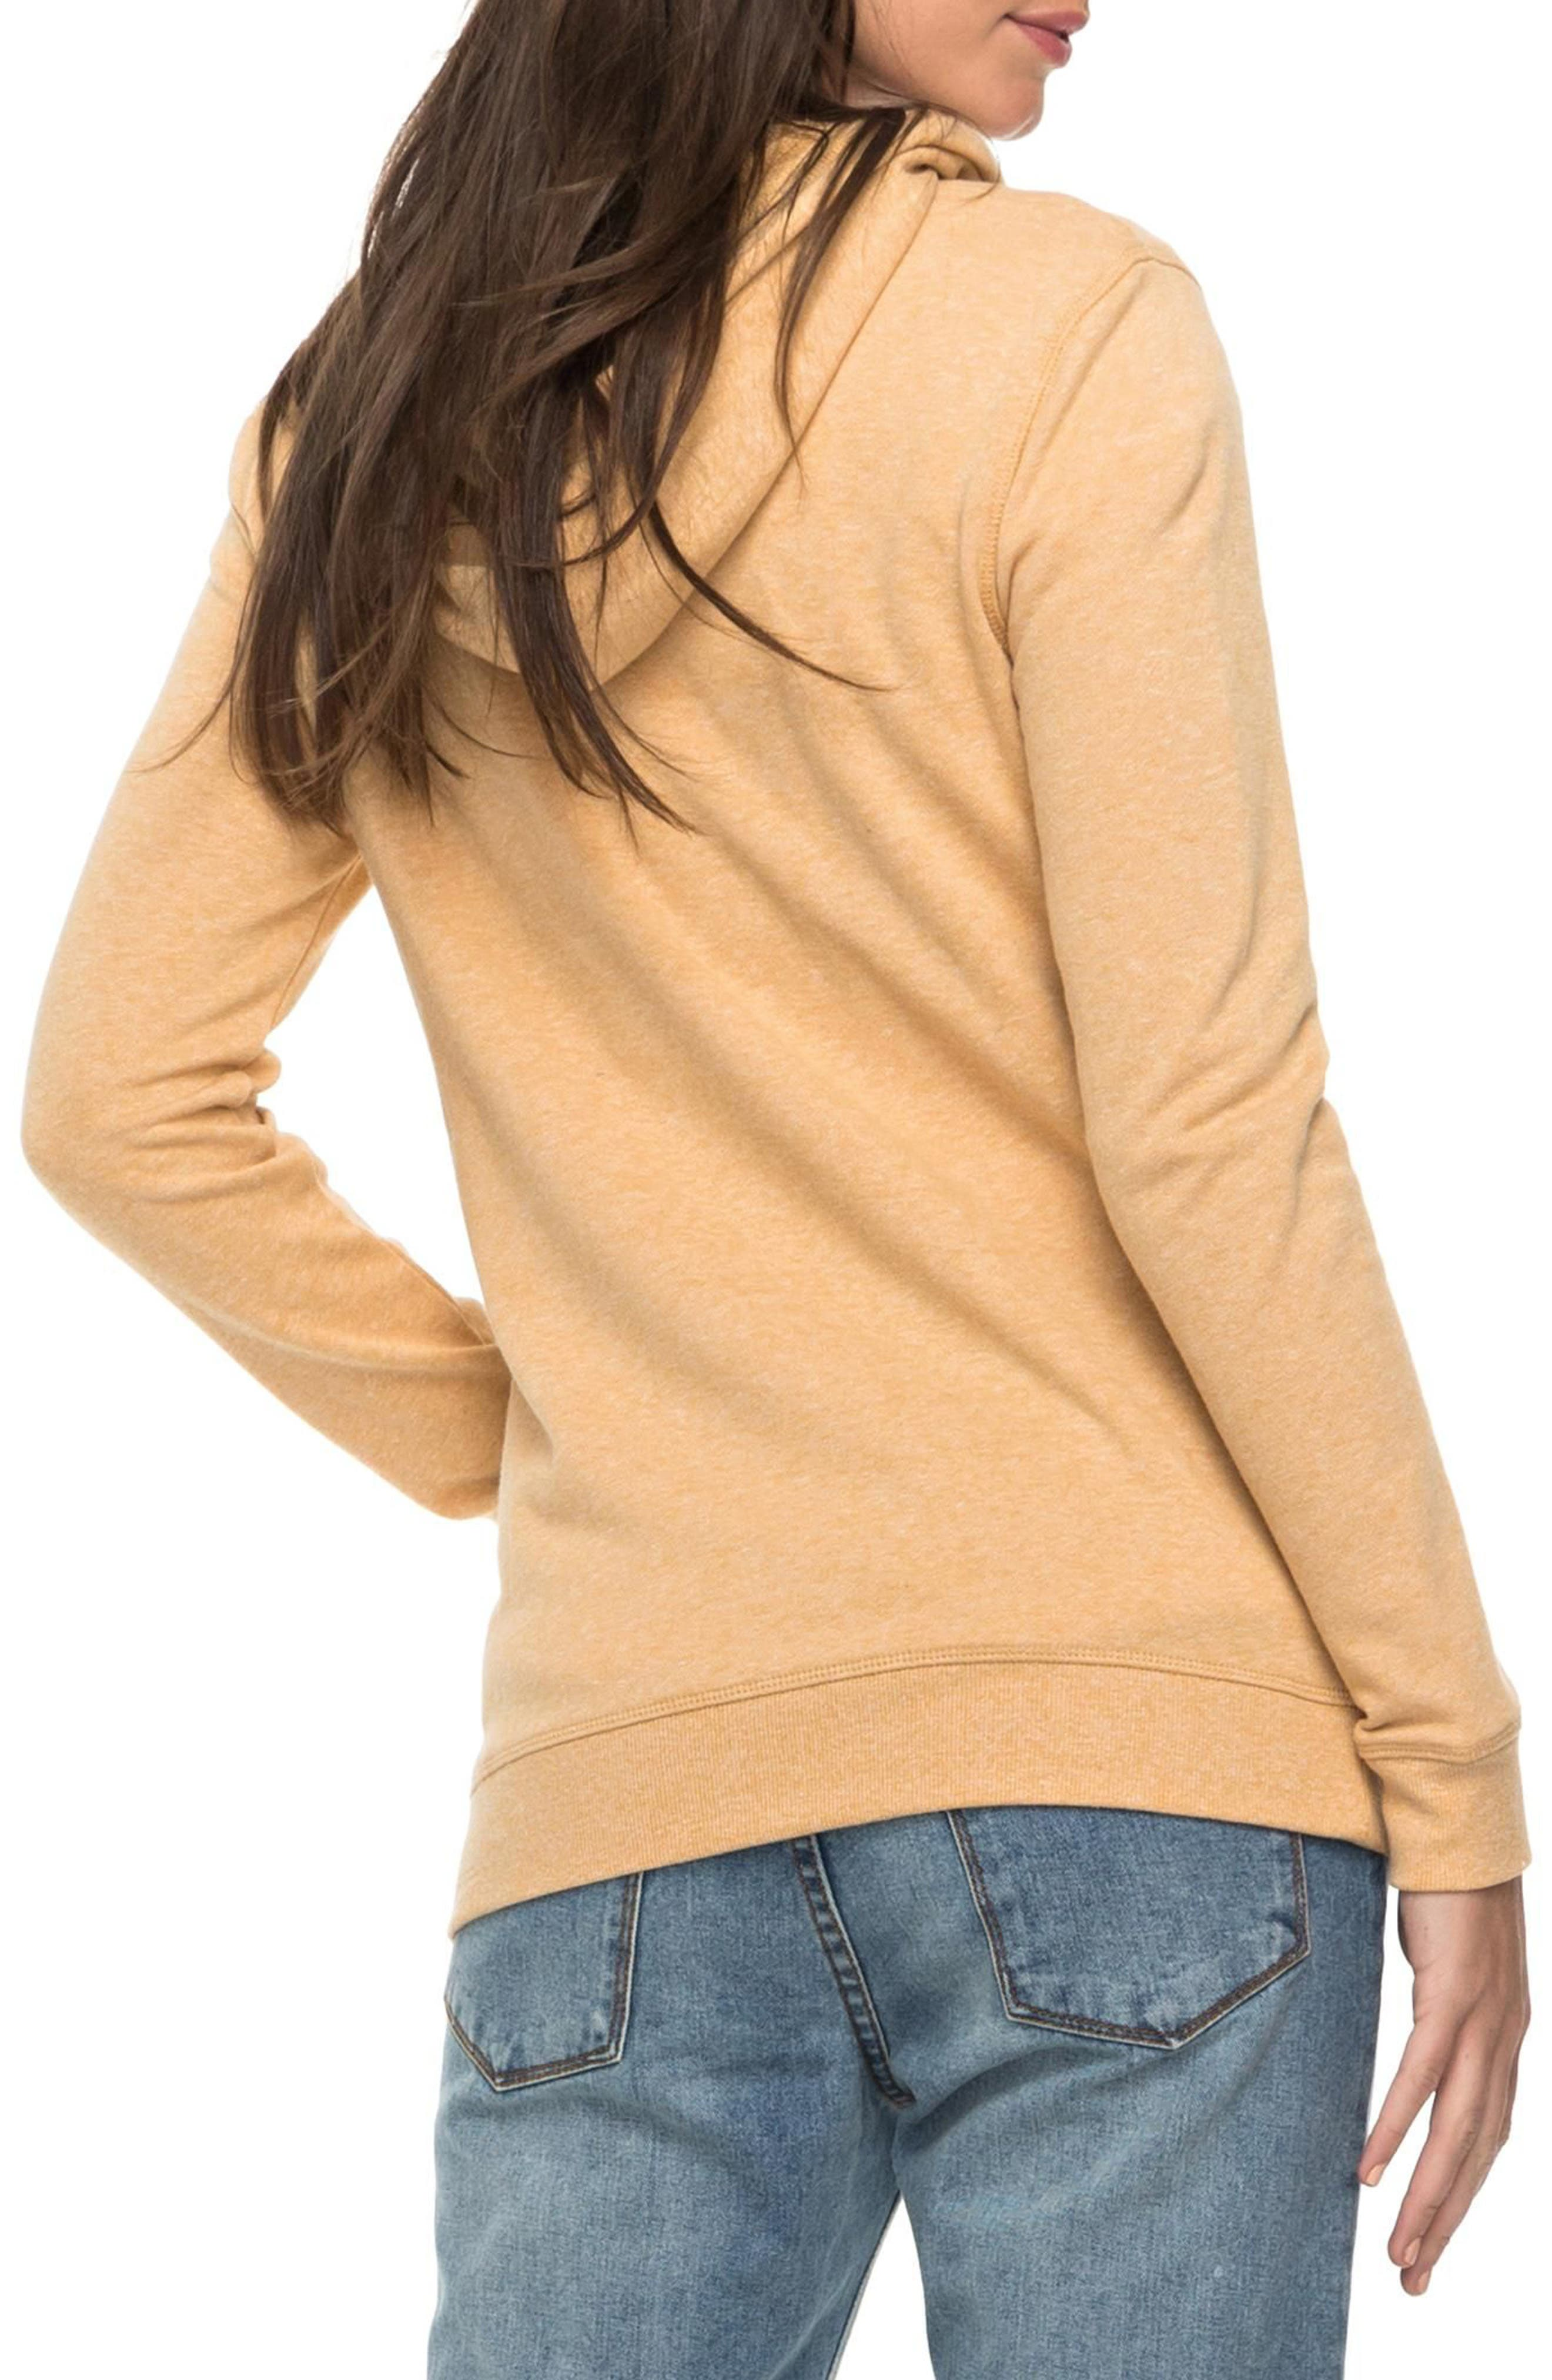 Trippin Hoodie,                             Alternate thumbnail 3, color,                             Buff Yellow Heather